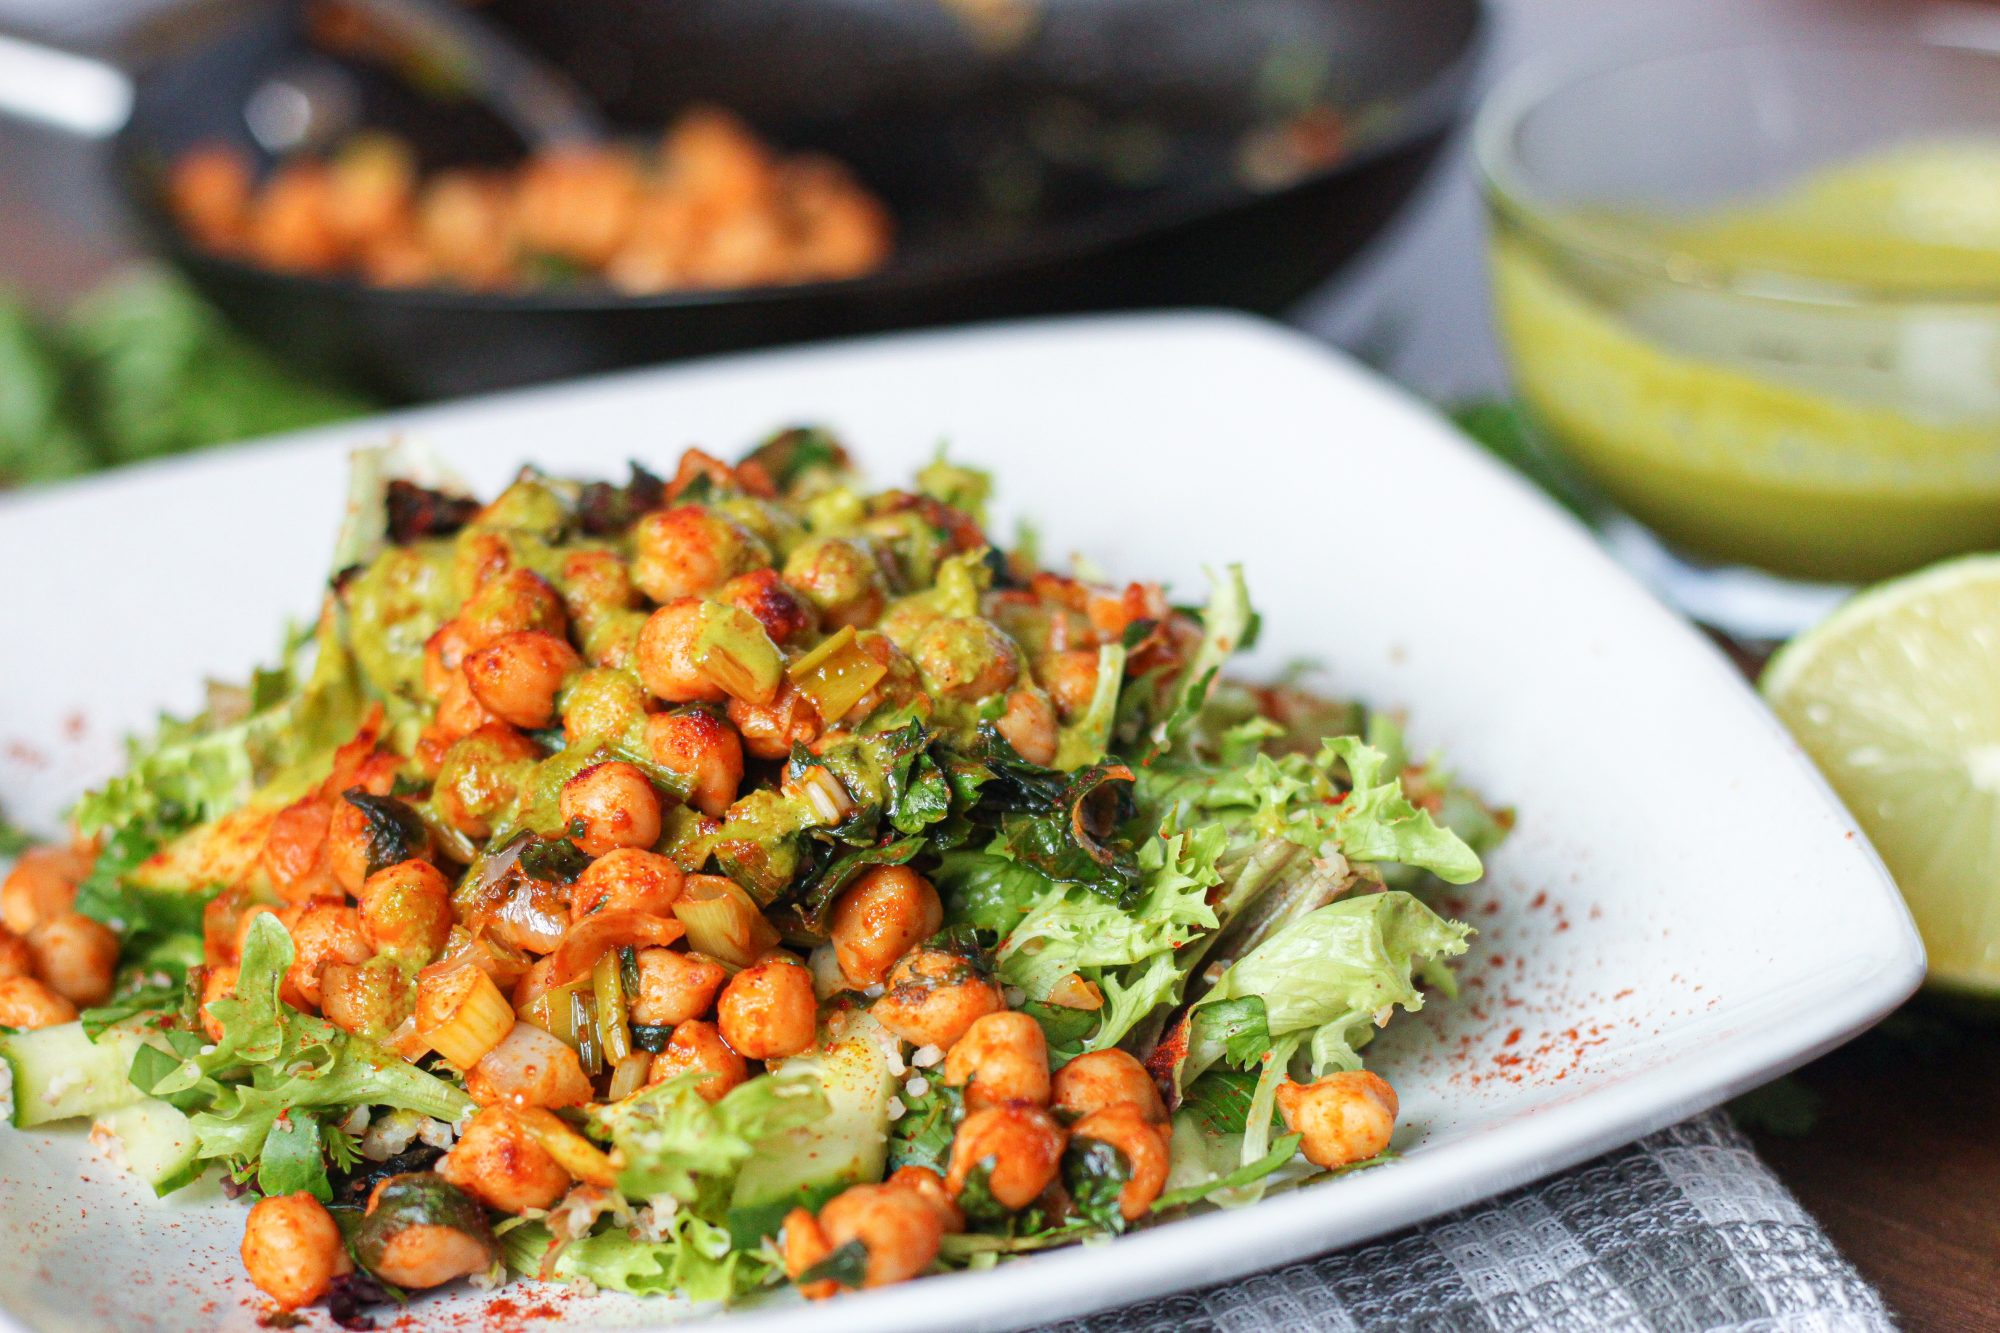 Chipotle chickpea salad with cilantro lime dressing